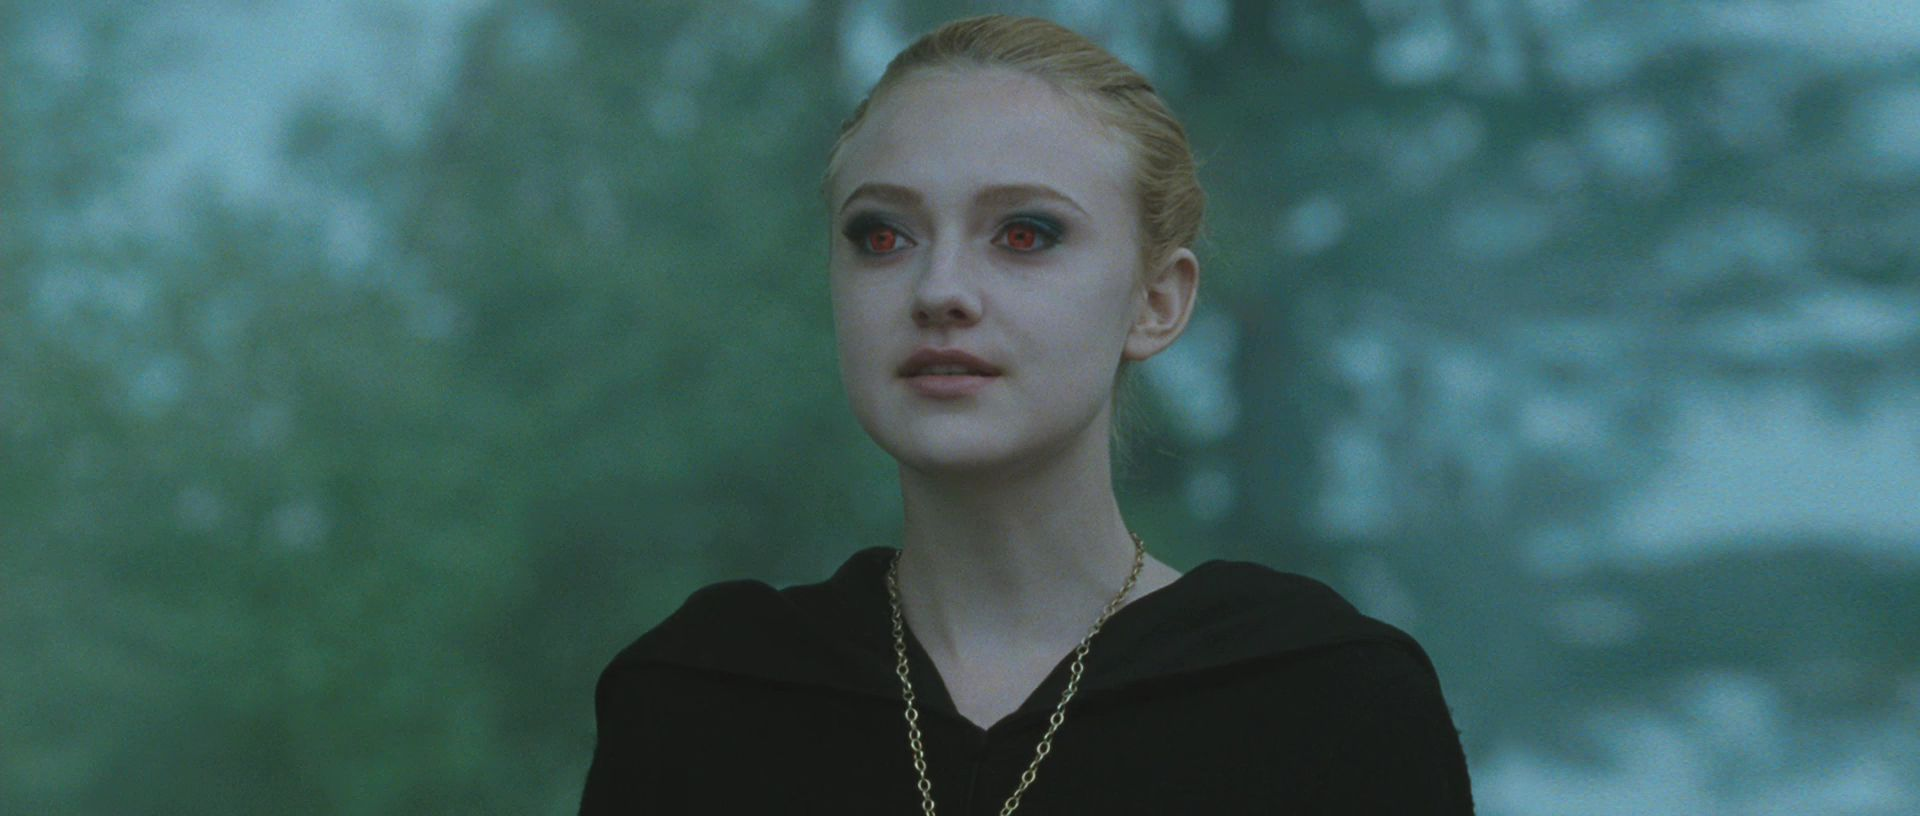 Act like jane volturi dont